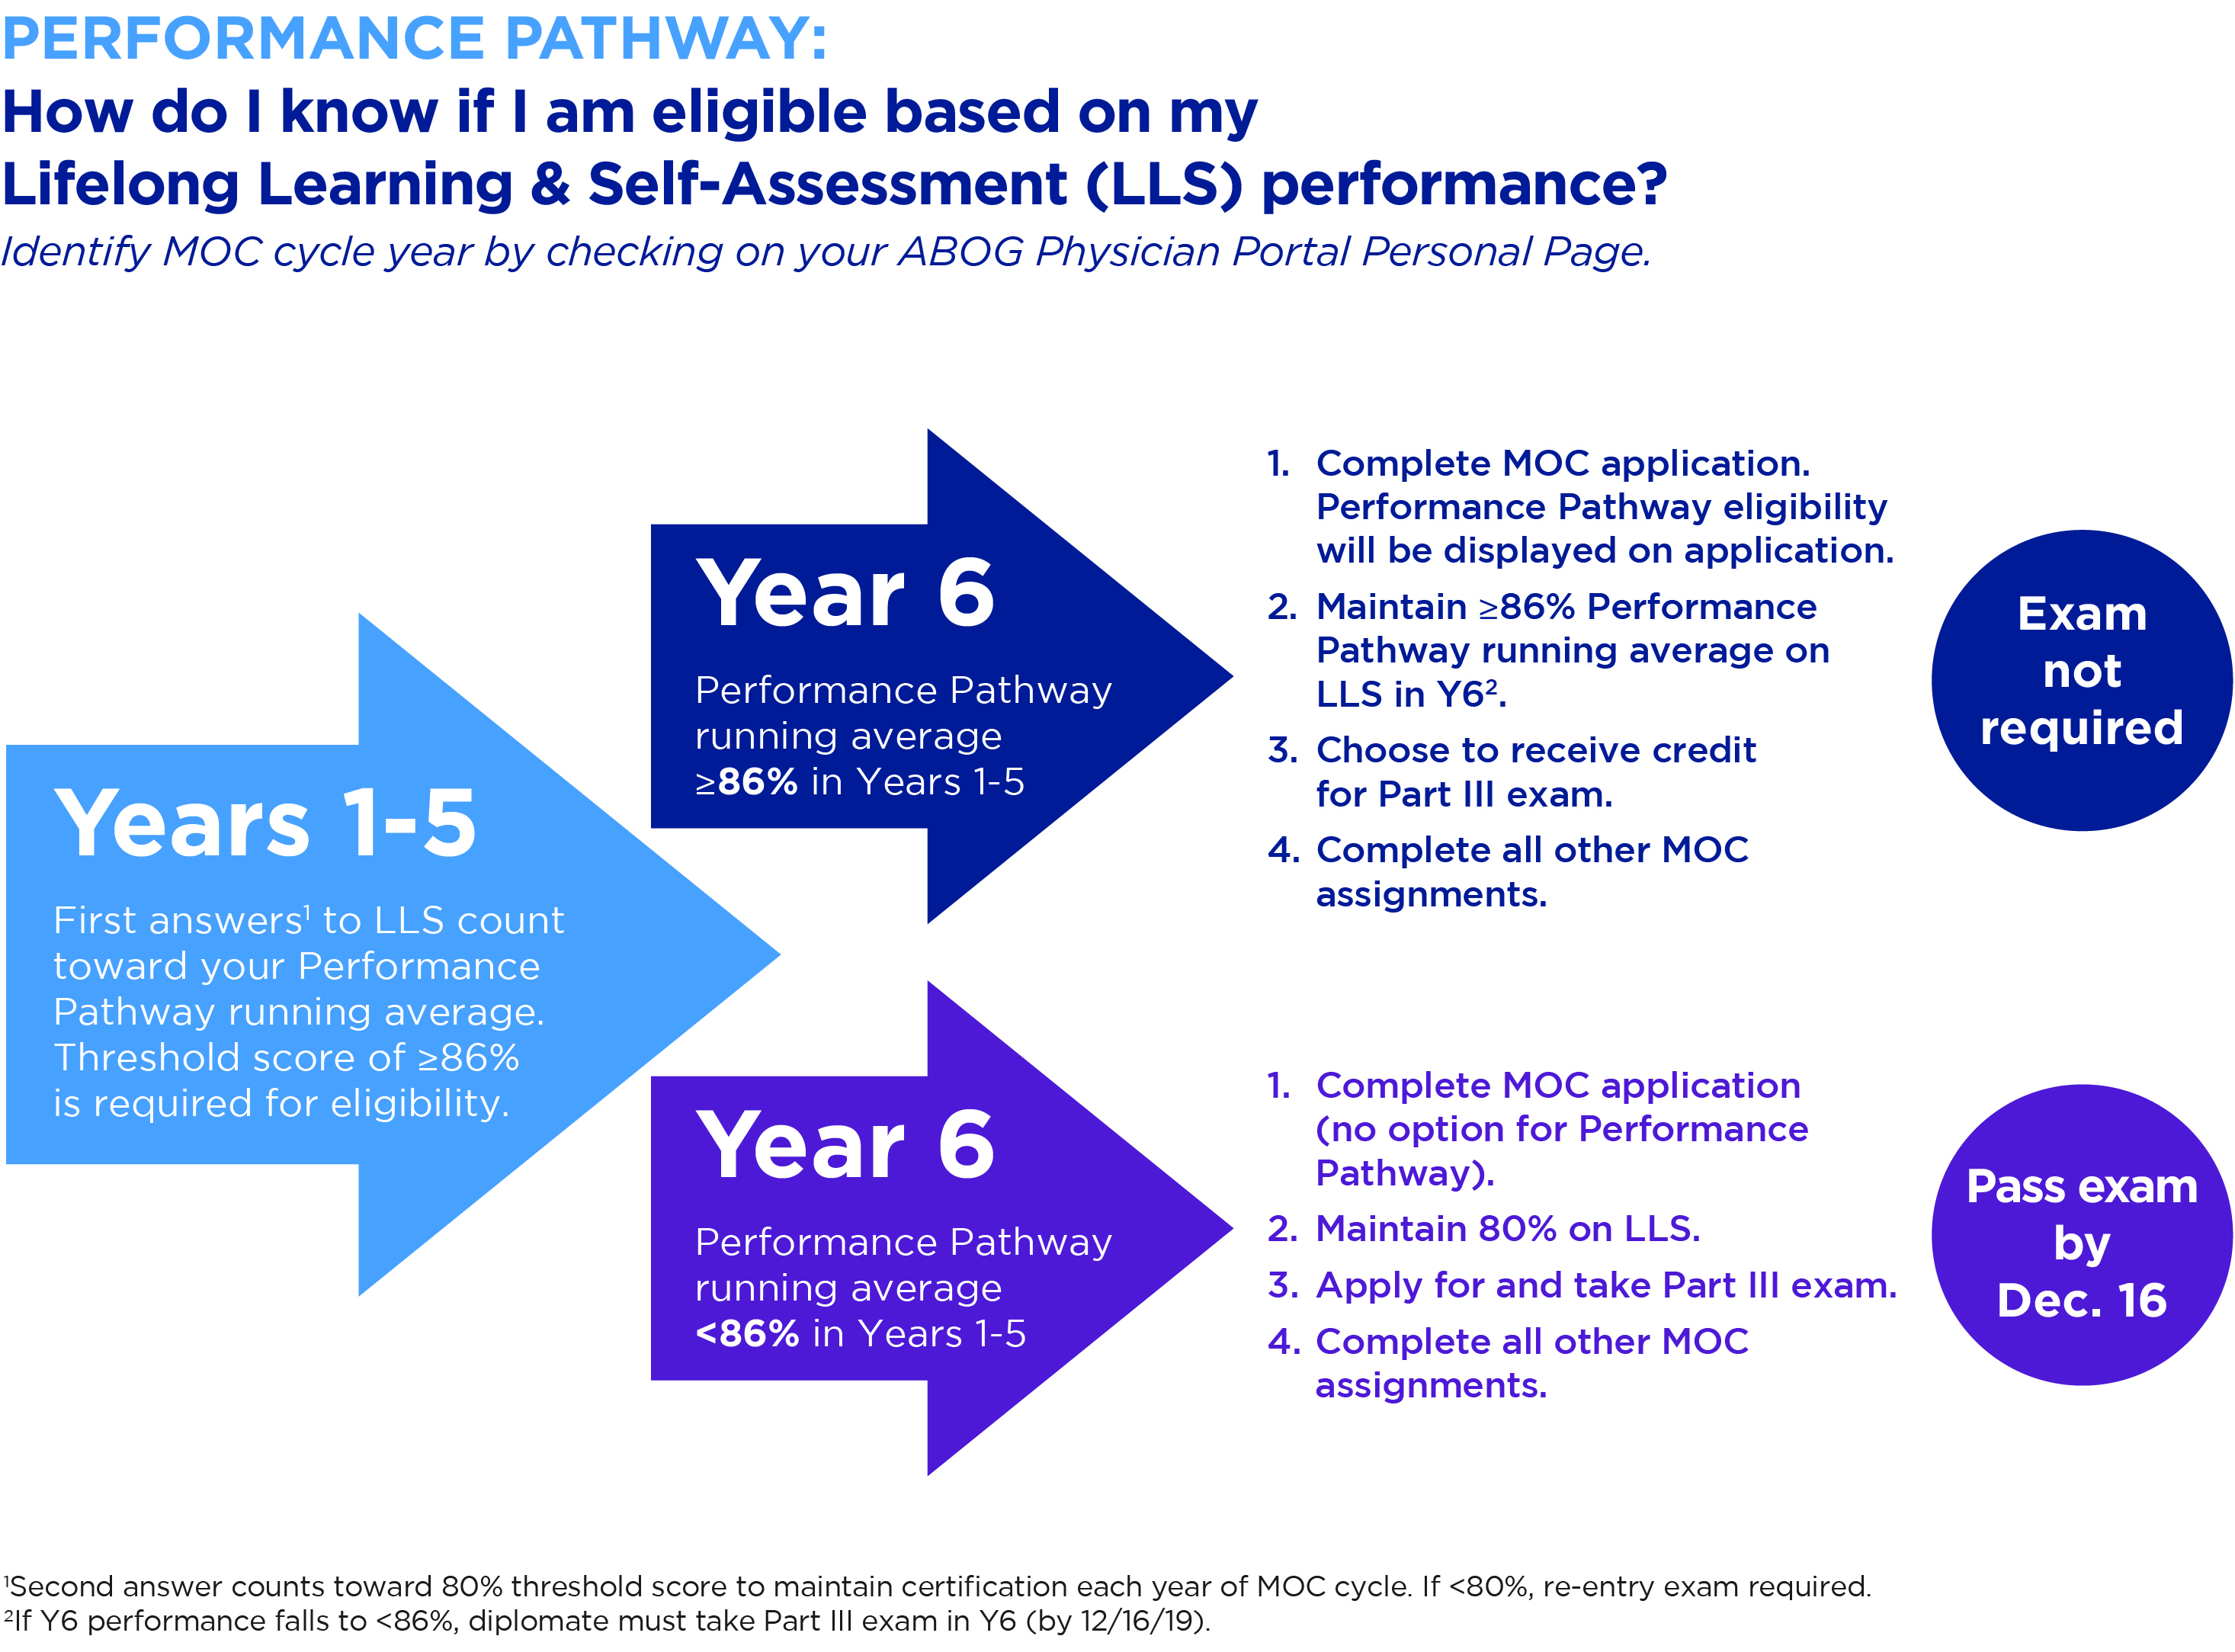 Chart explaining Performance Pathway Eligibility